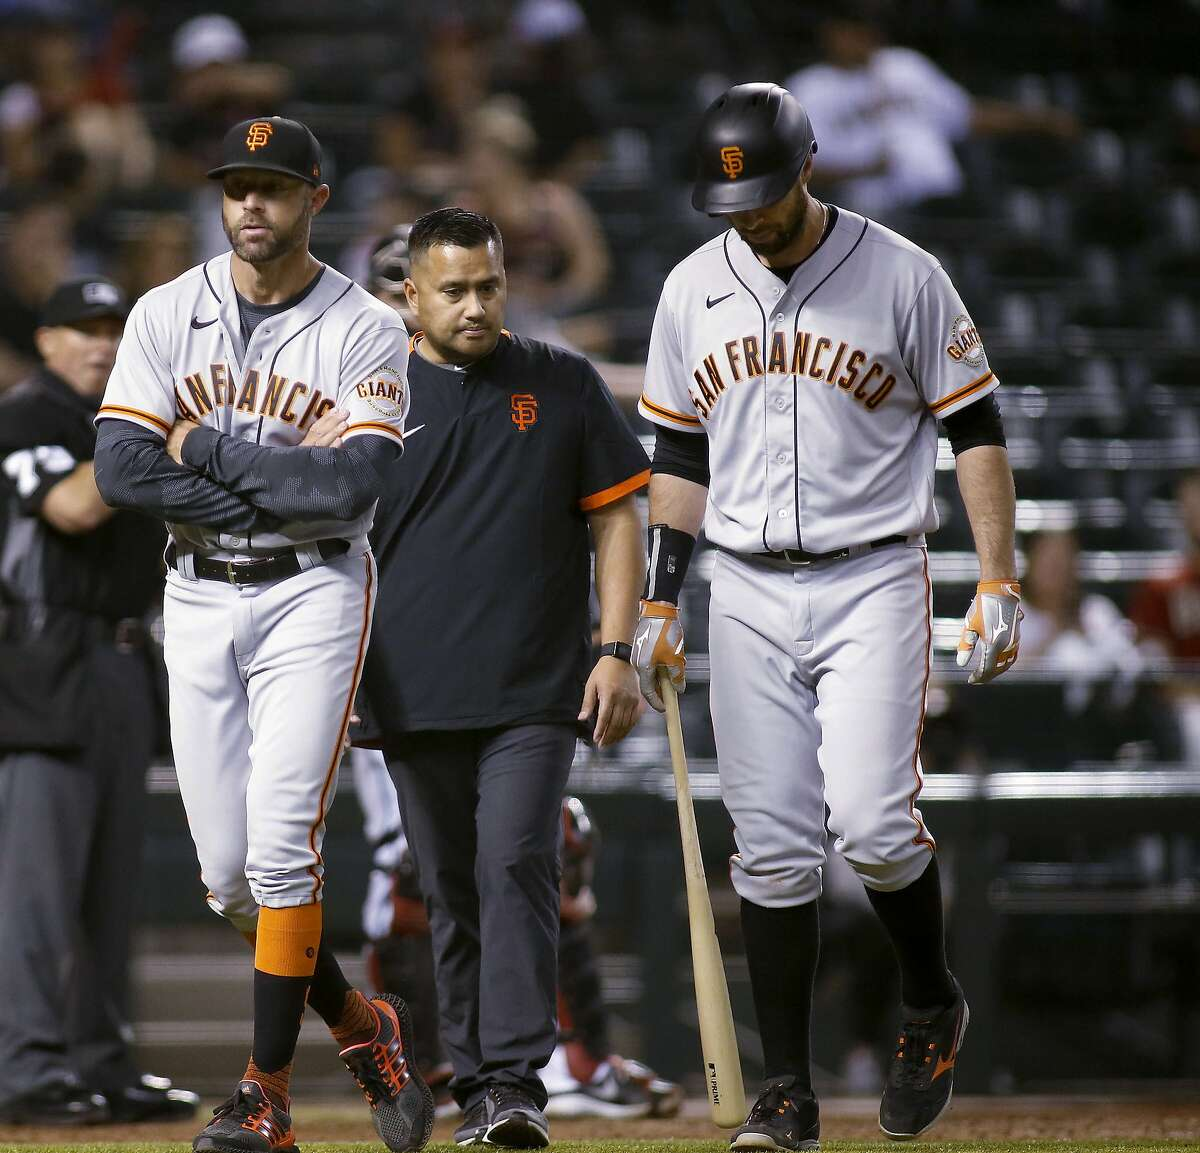 As a trainer watches, Brandon Belt, right, walks off with Gabe Kapler after Belt suffered an oblique strain Tuesday night.